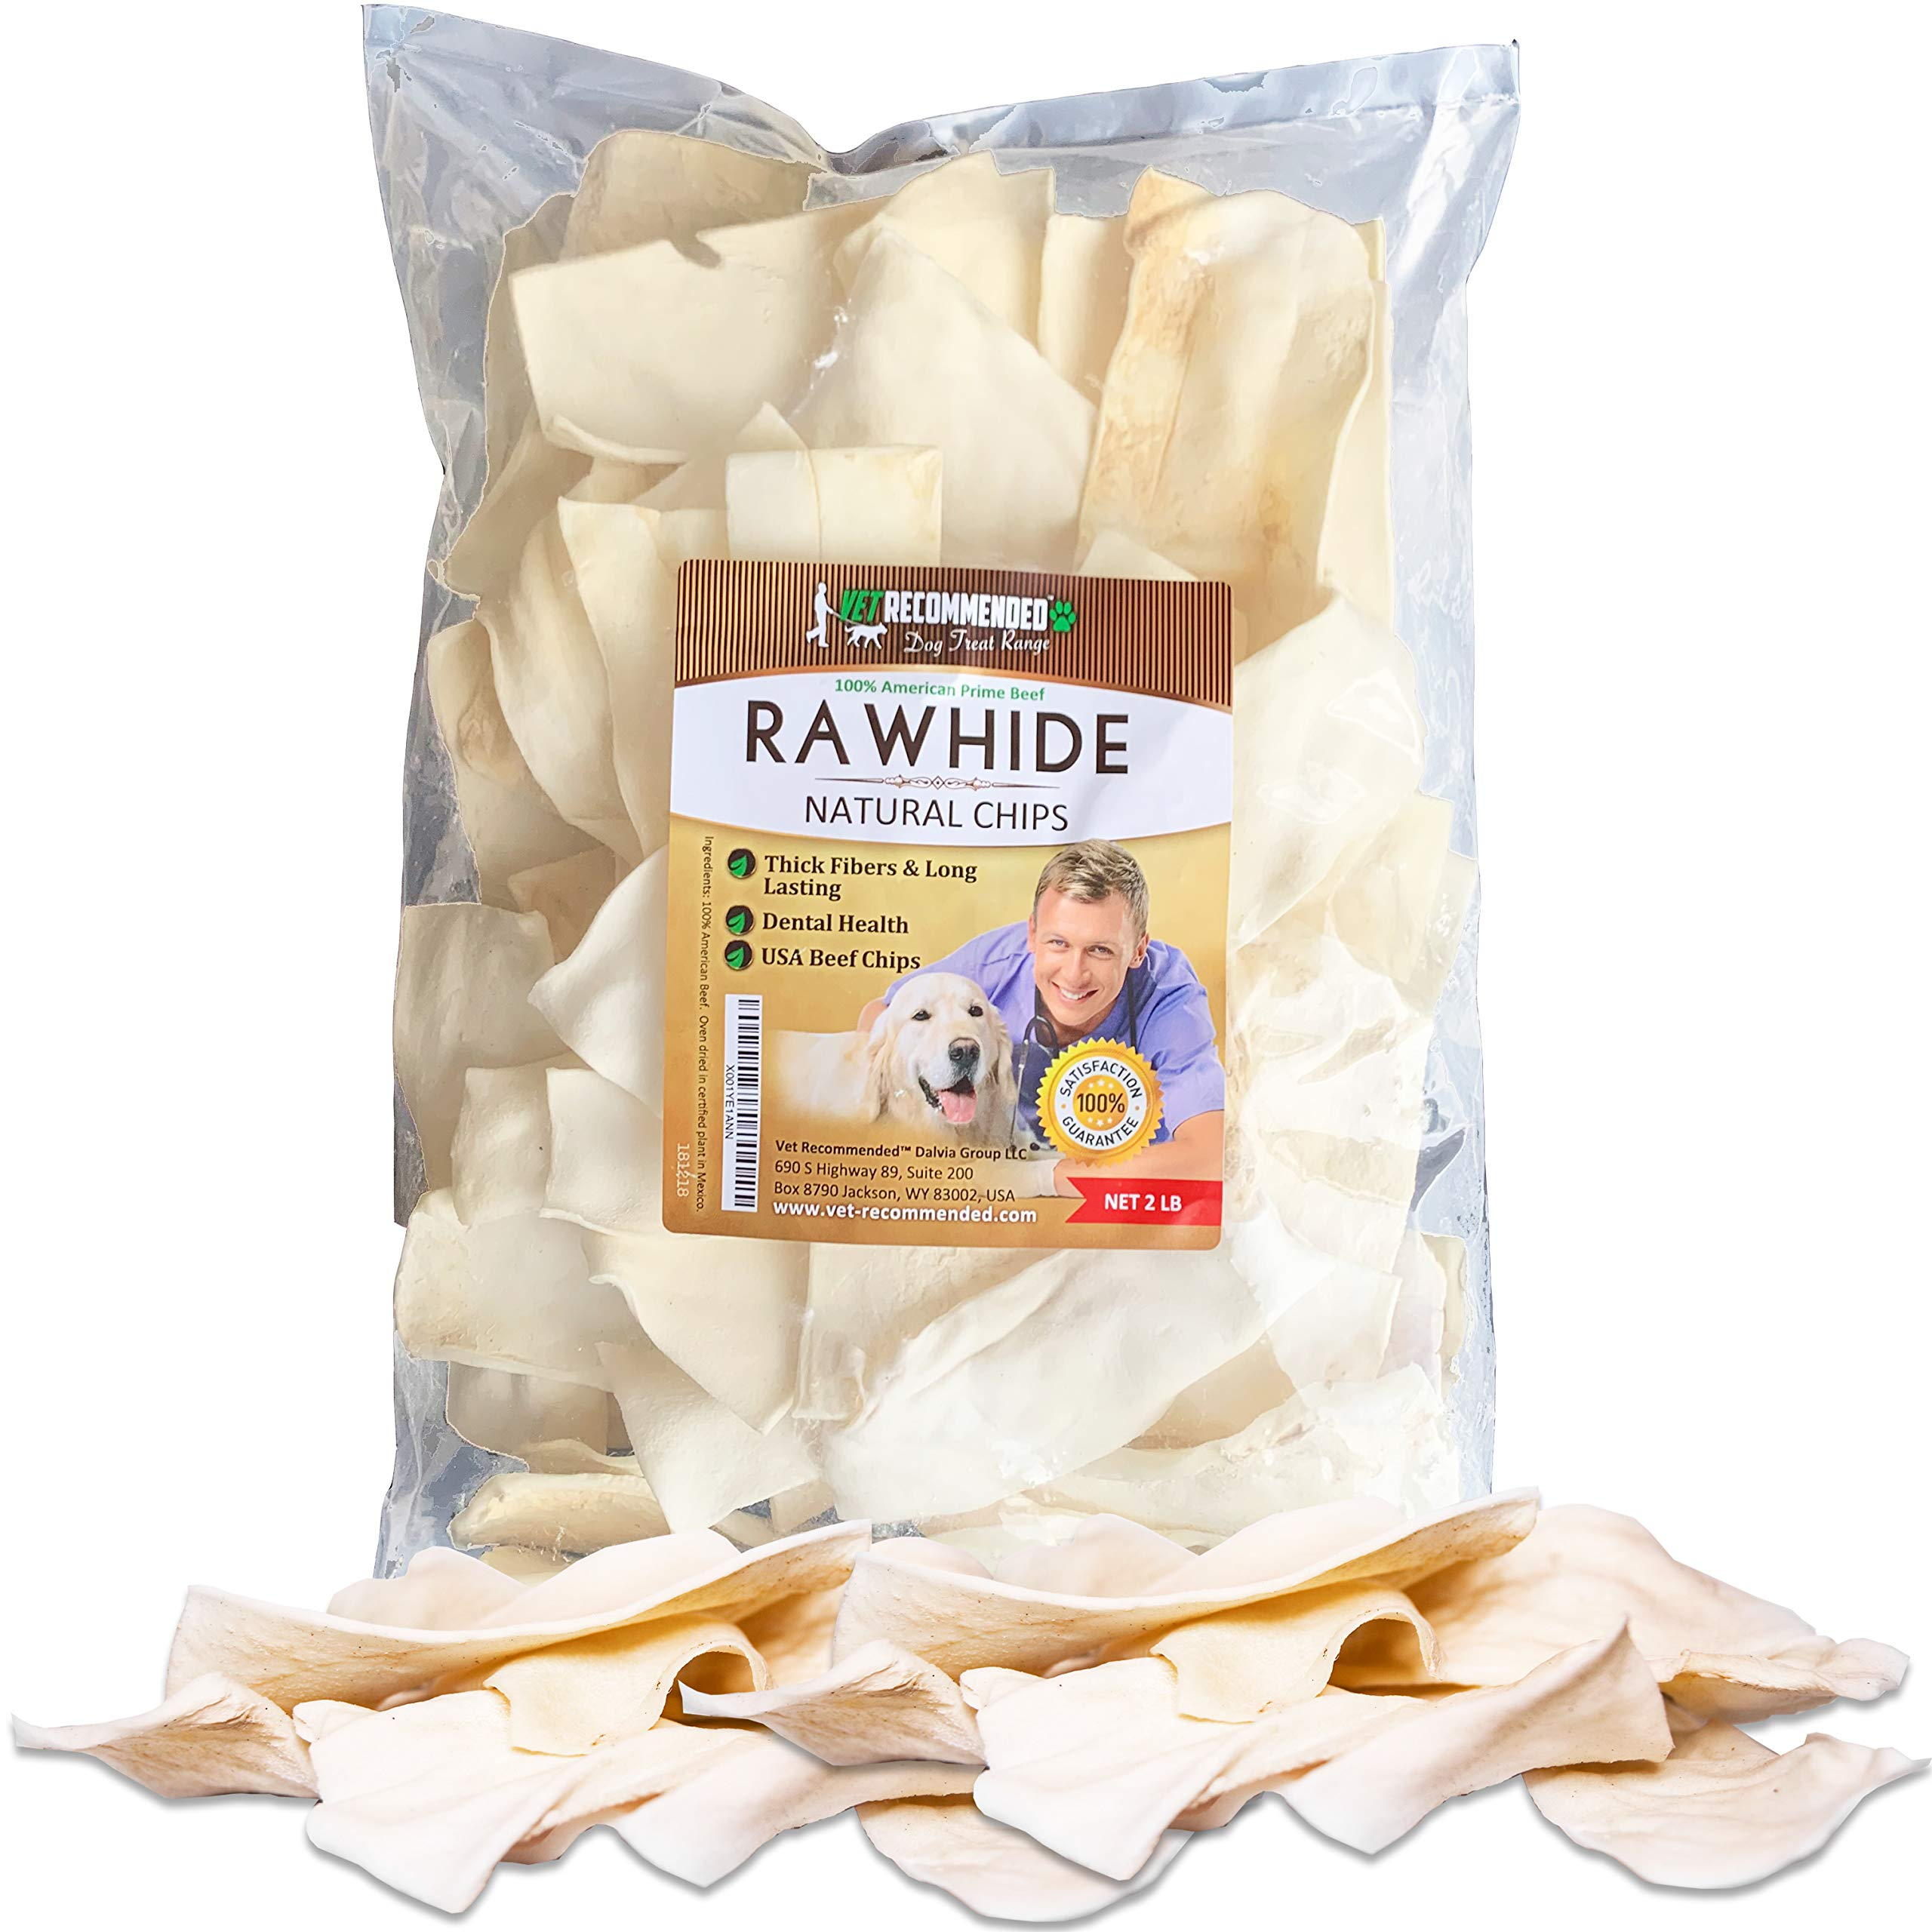 Vet Recommended - Natural Beef Rawhide Chips - Quality Rawhides for Dogs - Long Lasting Dog Chew - Pure Natural Goodness - USA Beef (2-lb Bag) by Vet Recommended